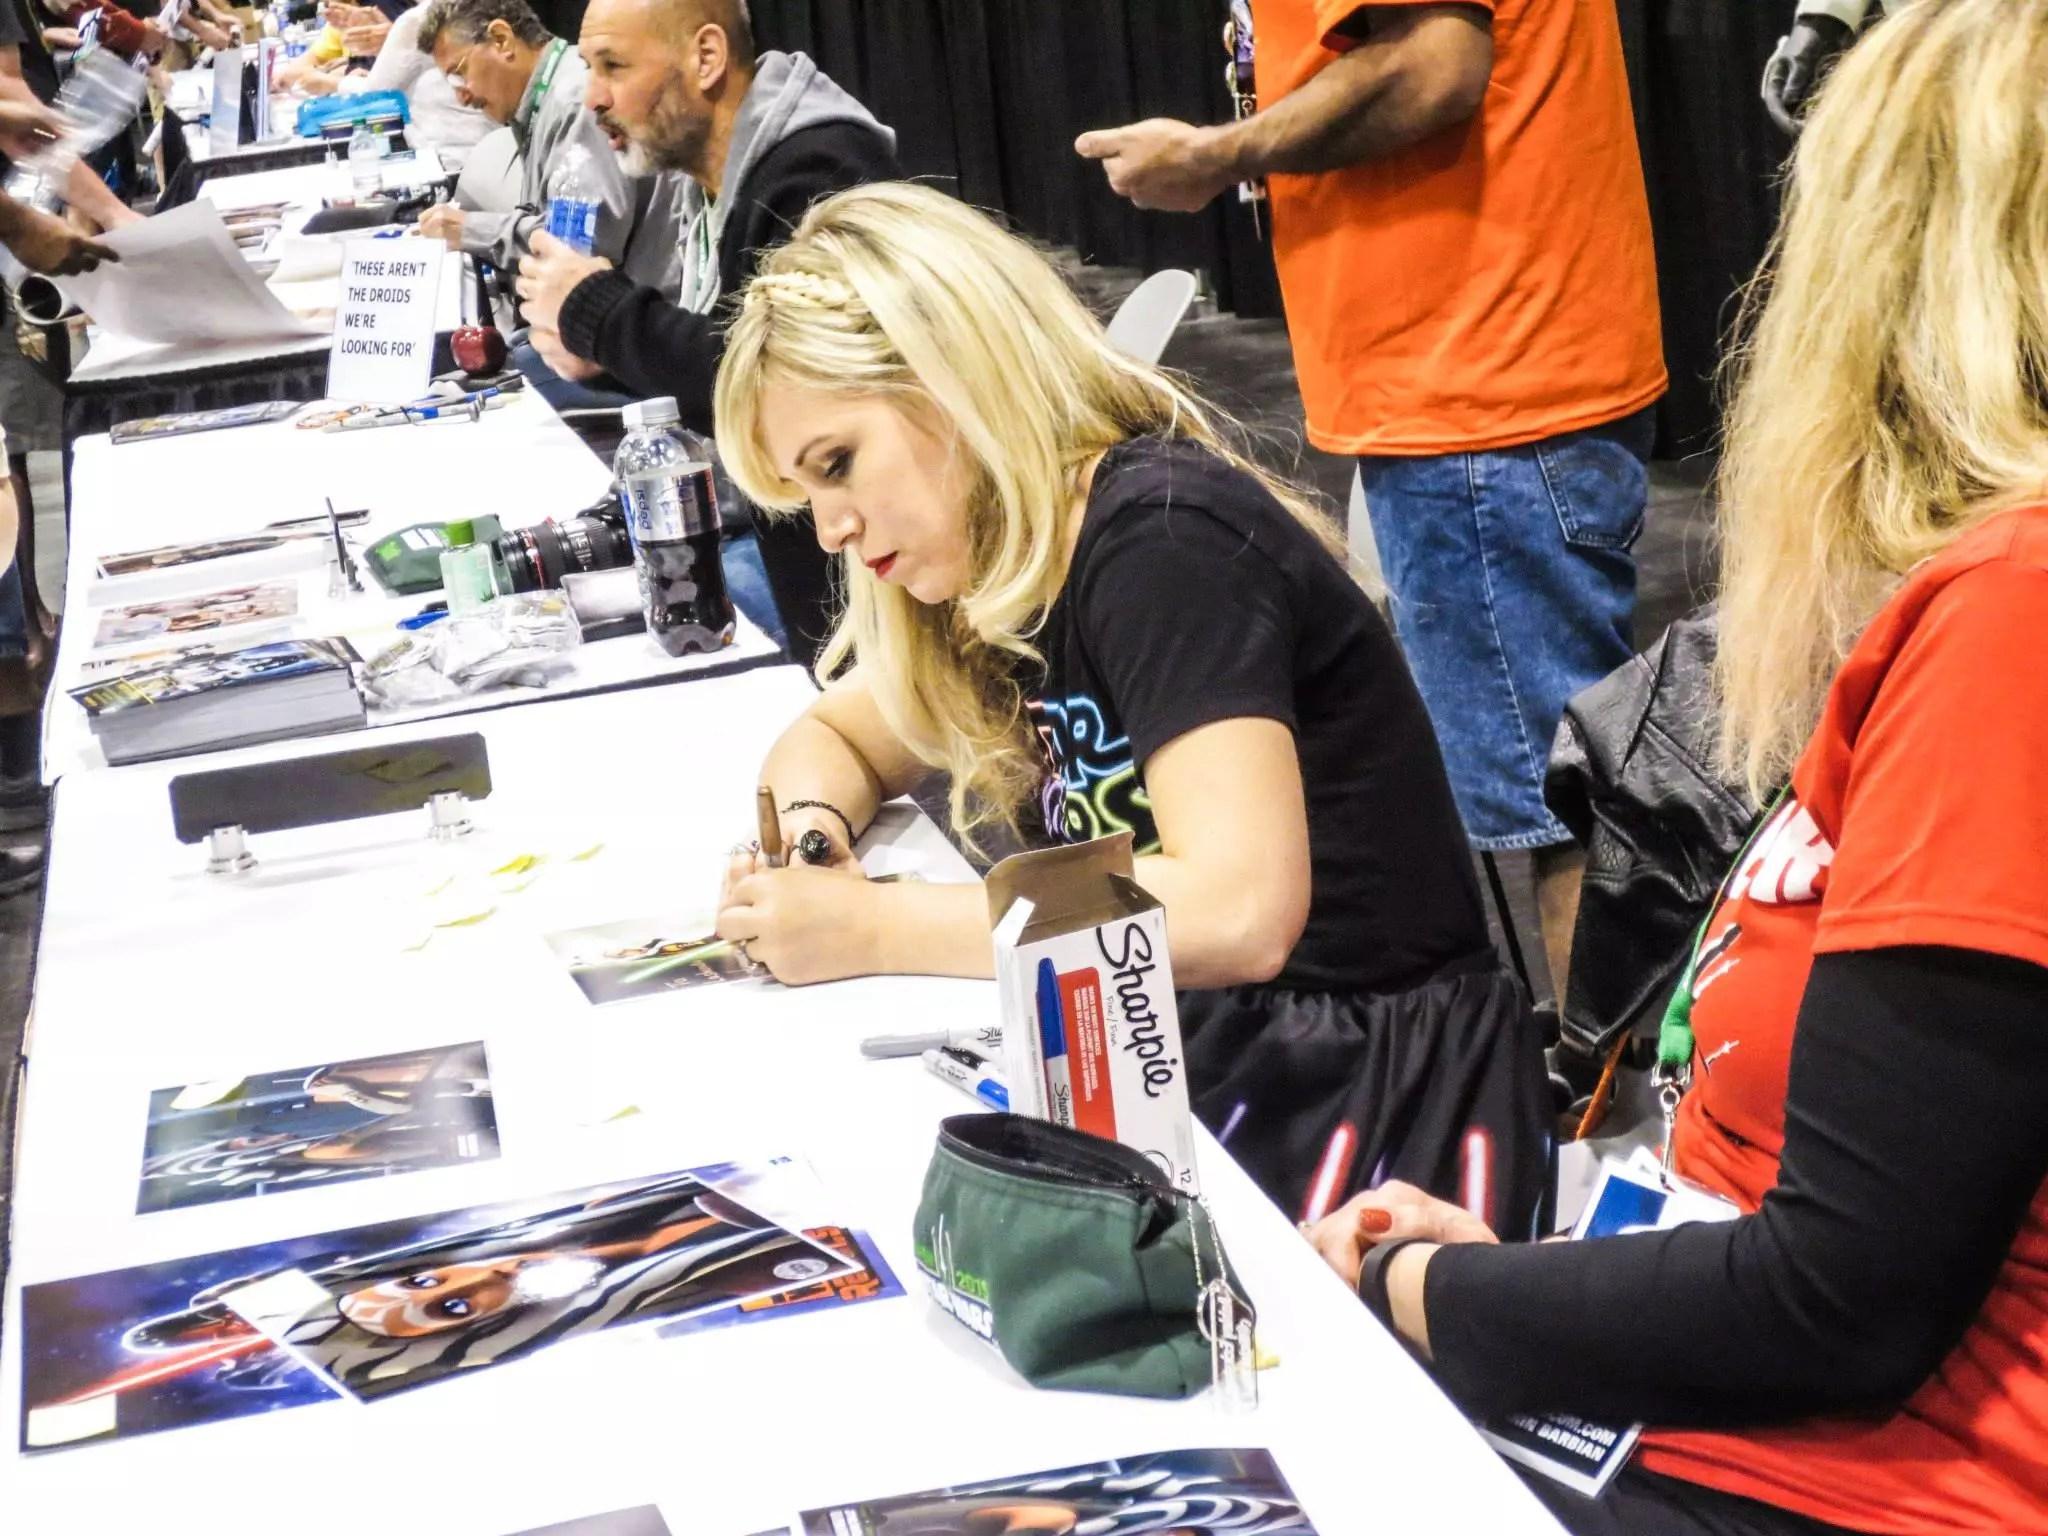 Clone Wars Star and Her Universe Founder, Ashley Eckstein, signing and greeting fans.